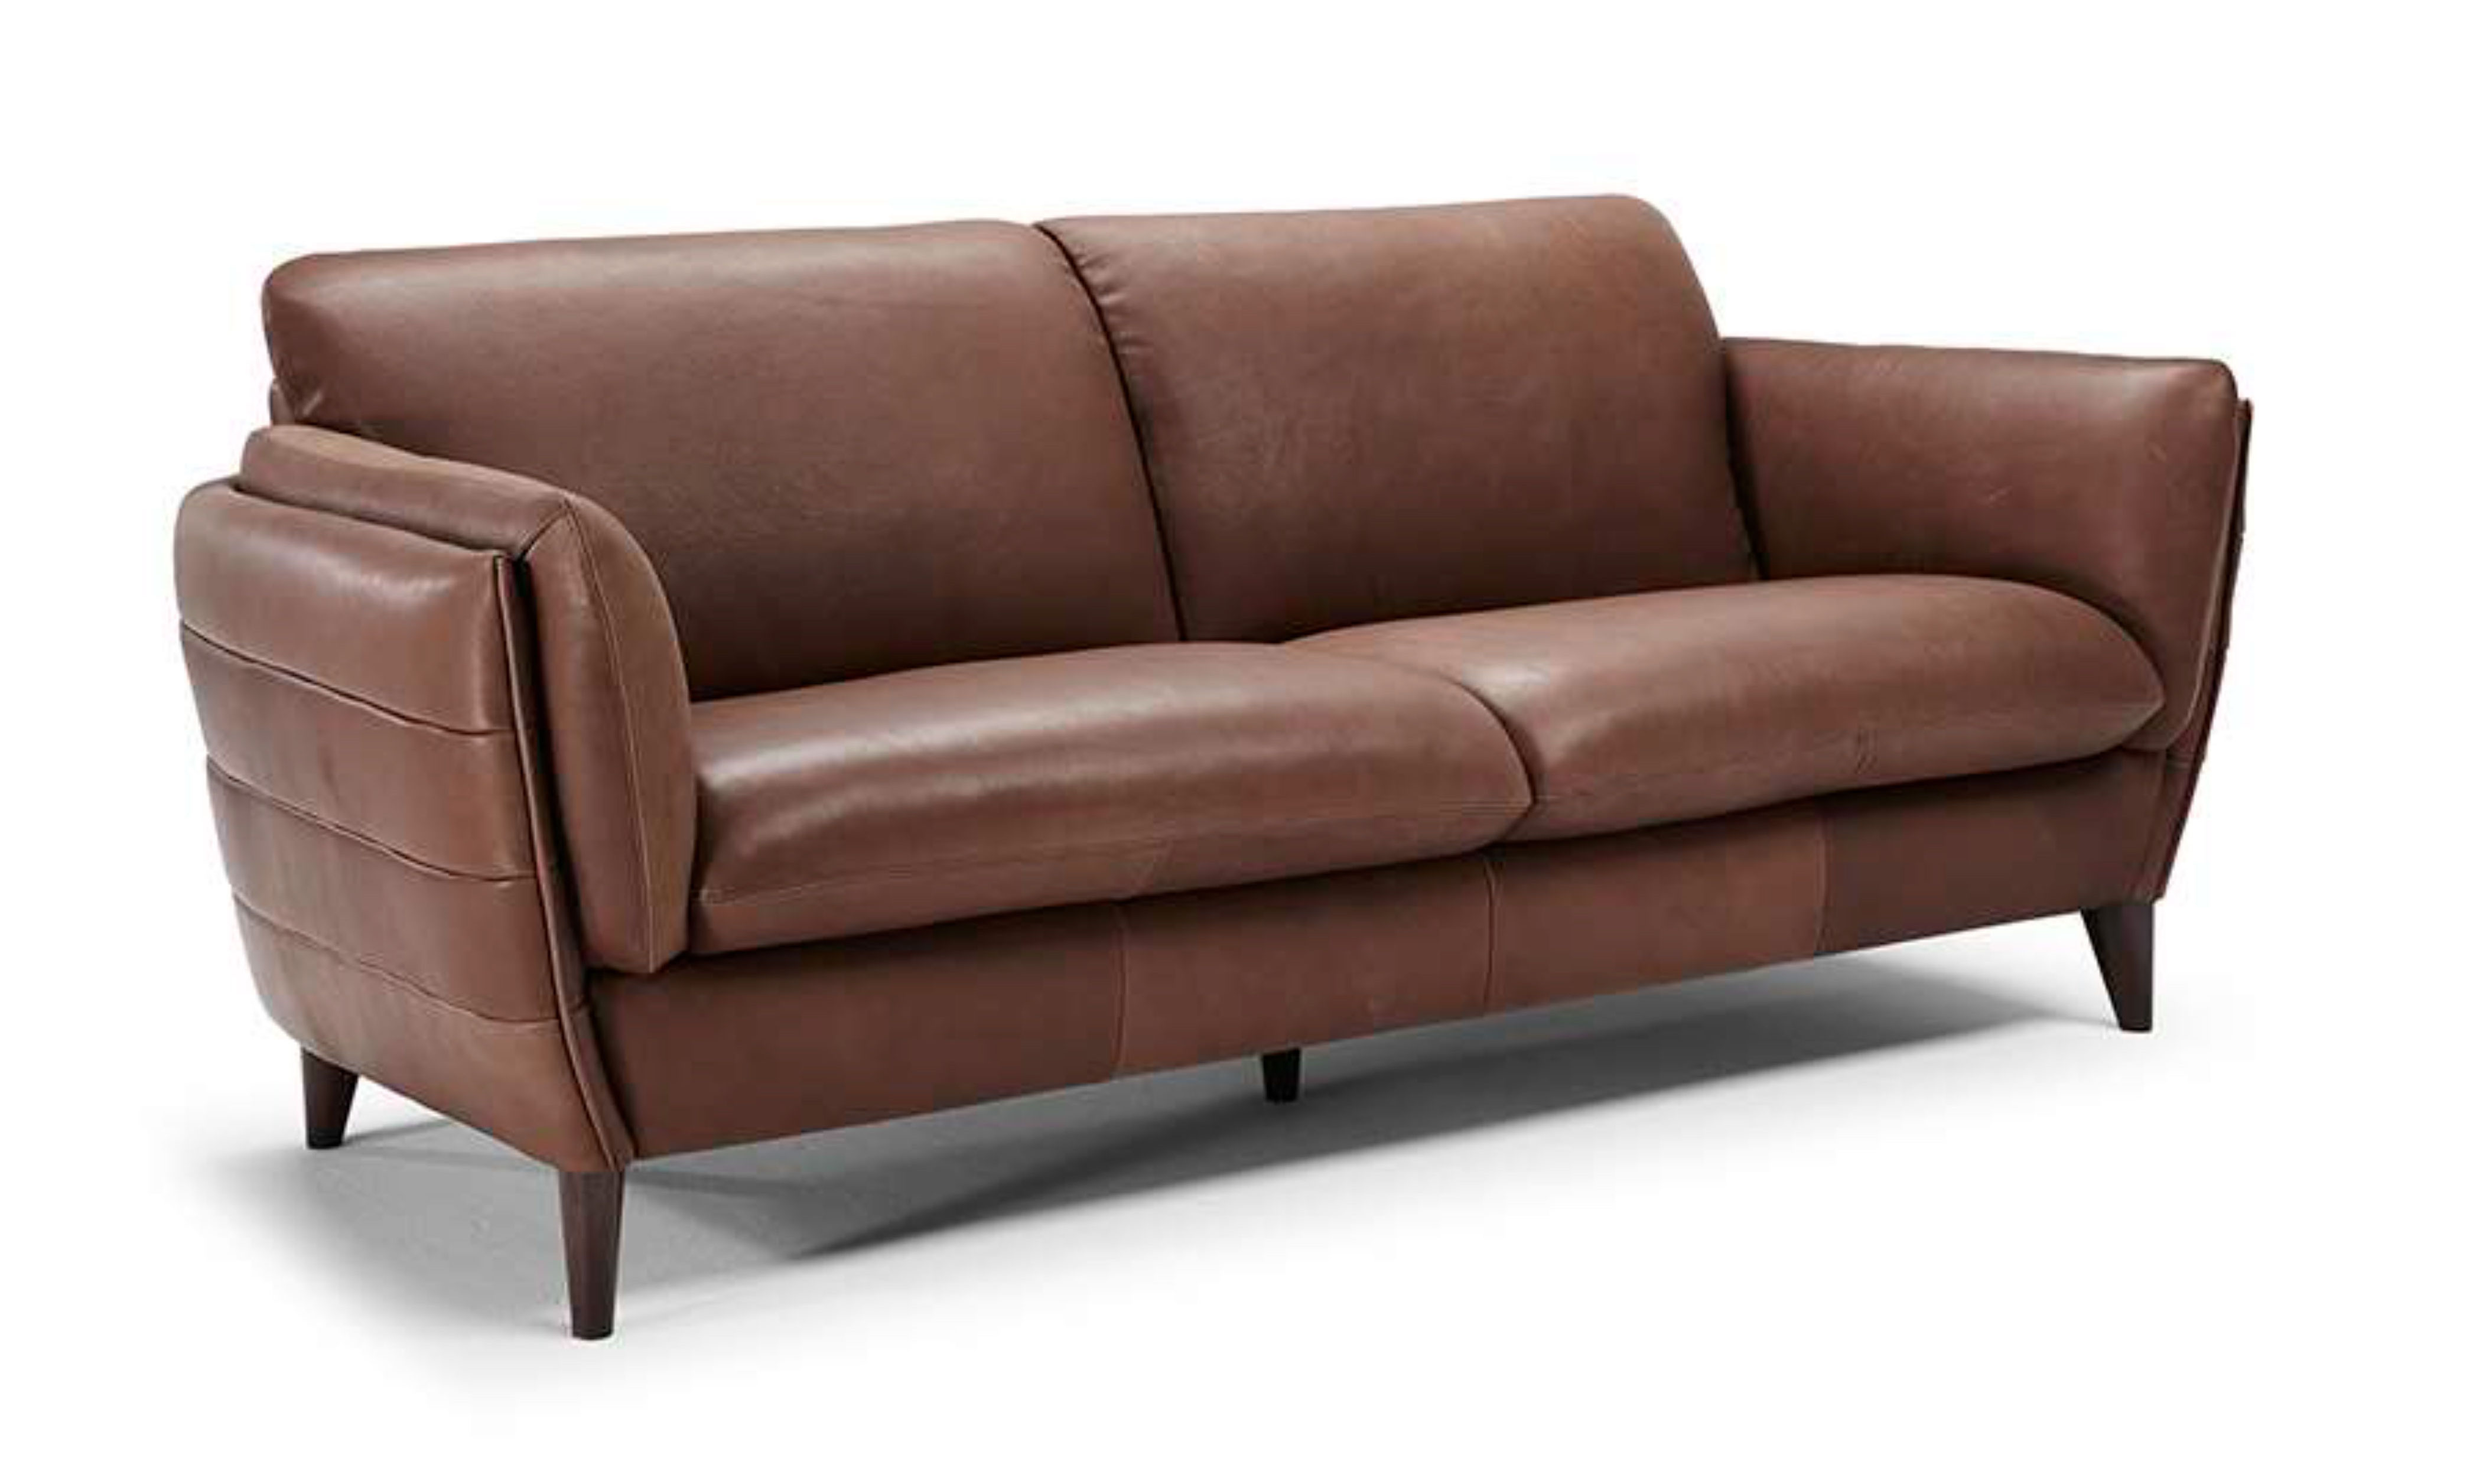 Prime Geloso B908 100 Top Grain Leather Sofa Sofas And Caraccident5 Cool Chair Designs And Ideas Caraccident5Info